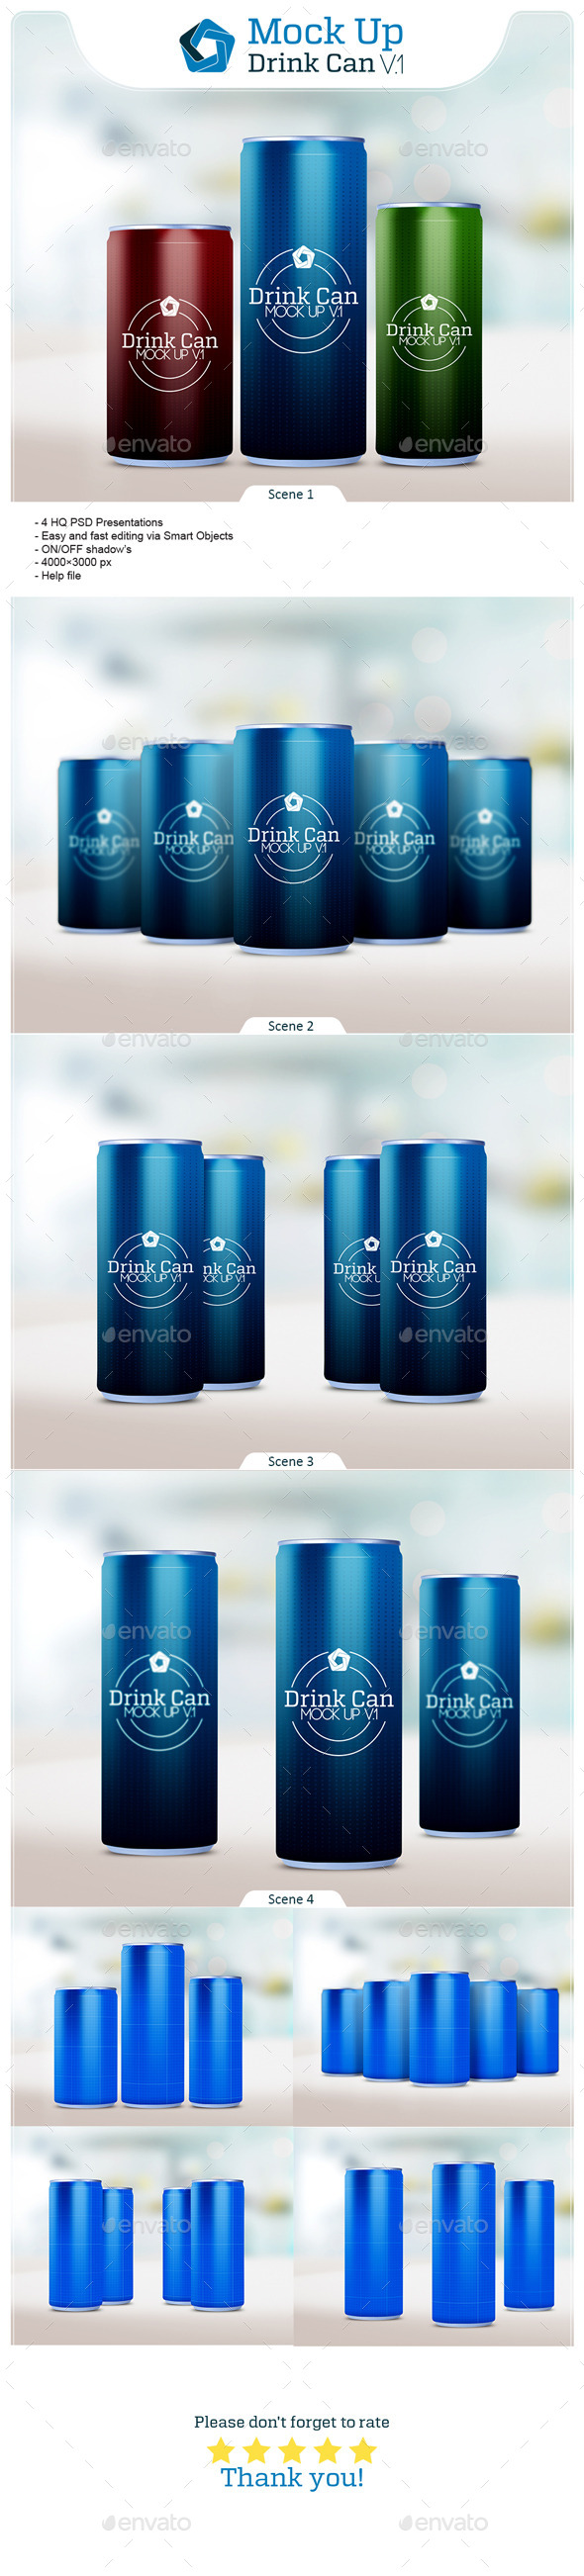 Drink Can V.1 - Food and Drink Packaging